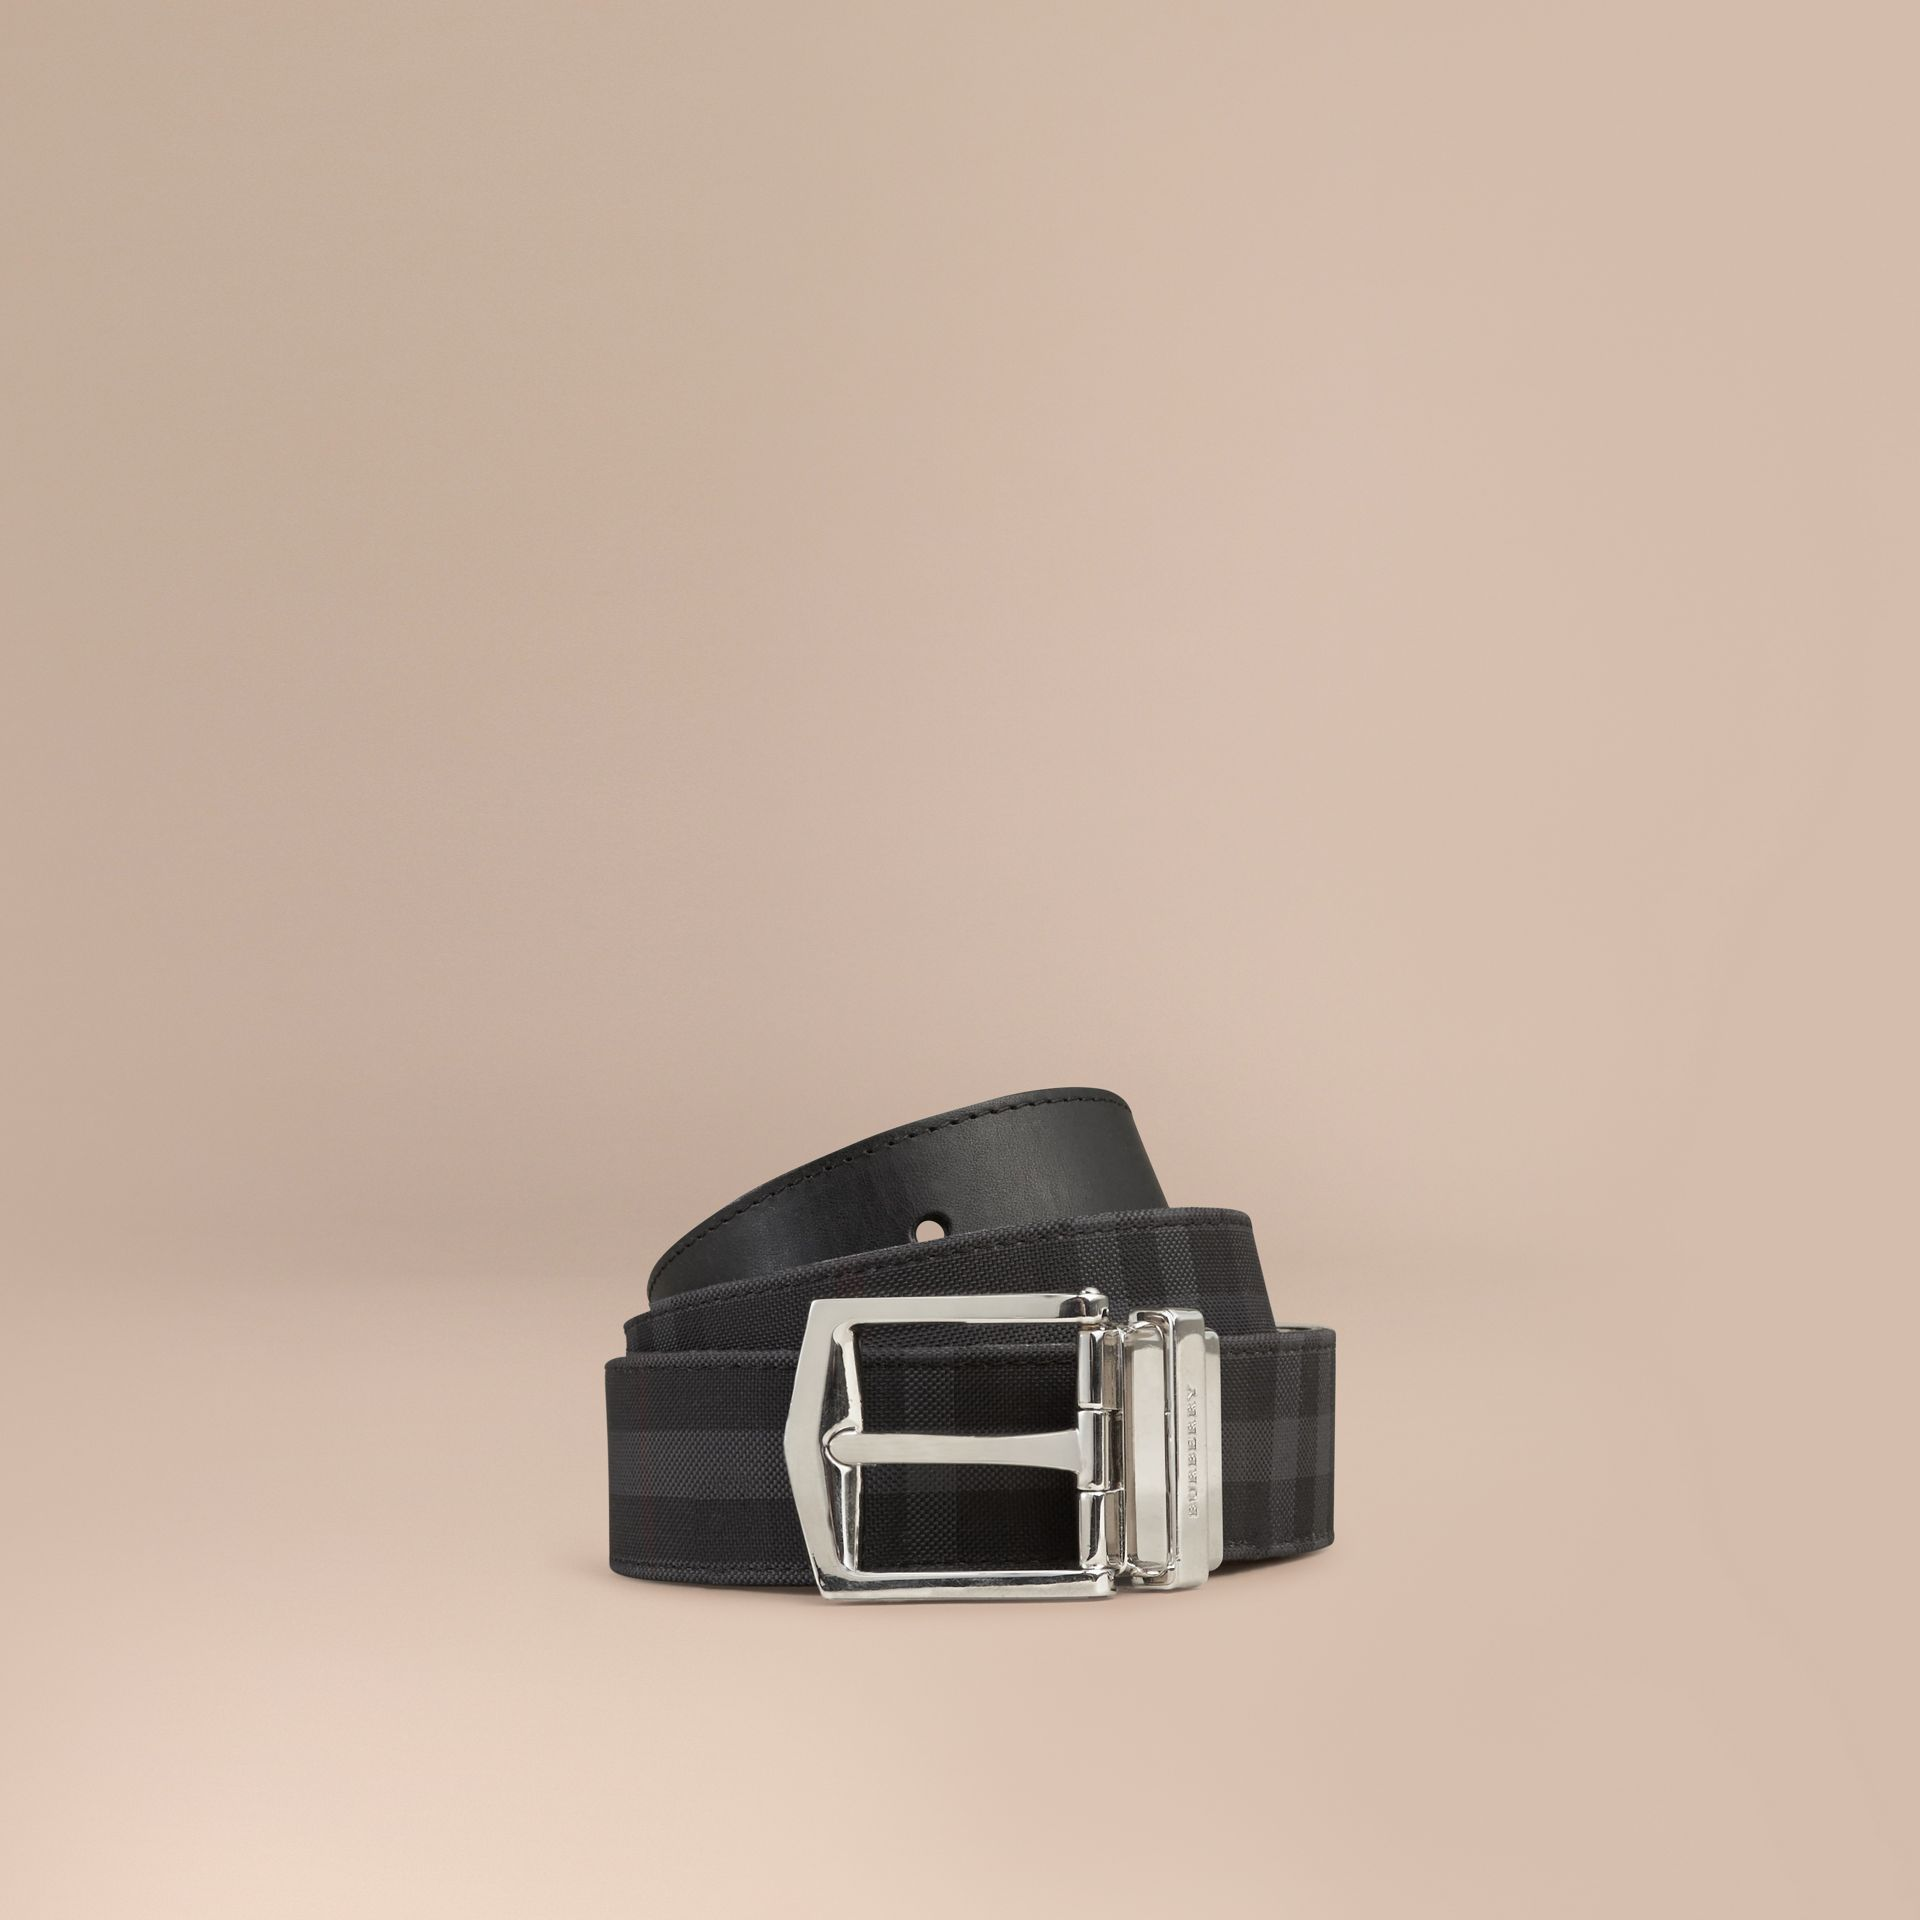 Reversible Horseferry Check and Leather Belt Charcoal/black - gallery image 1